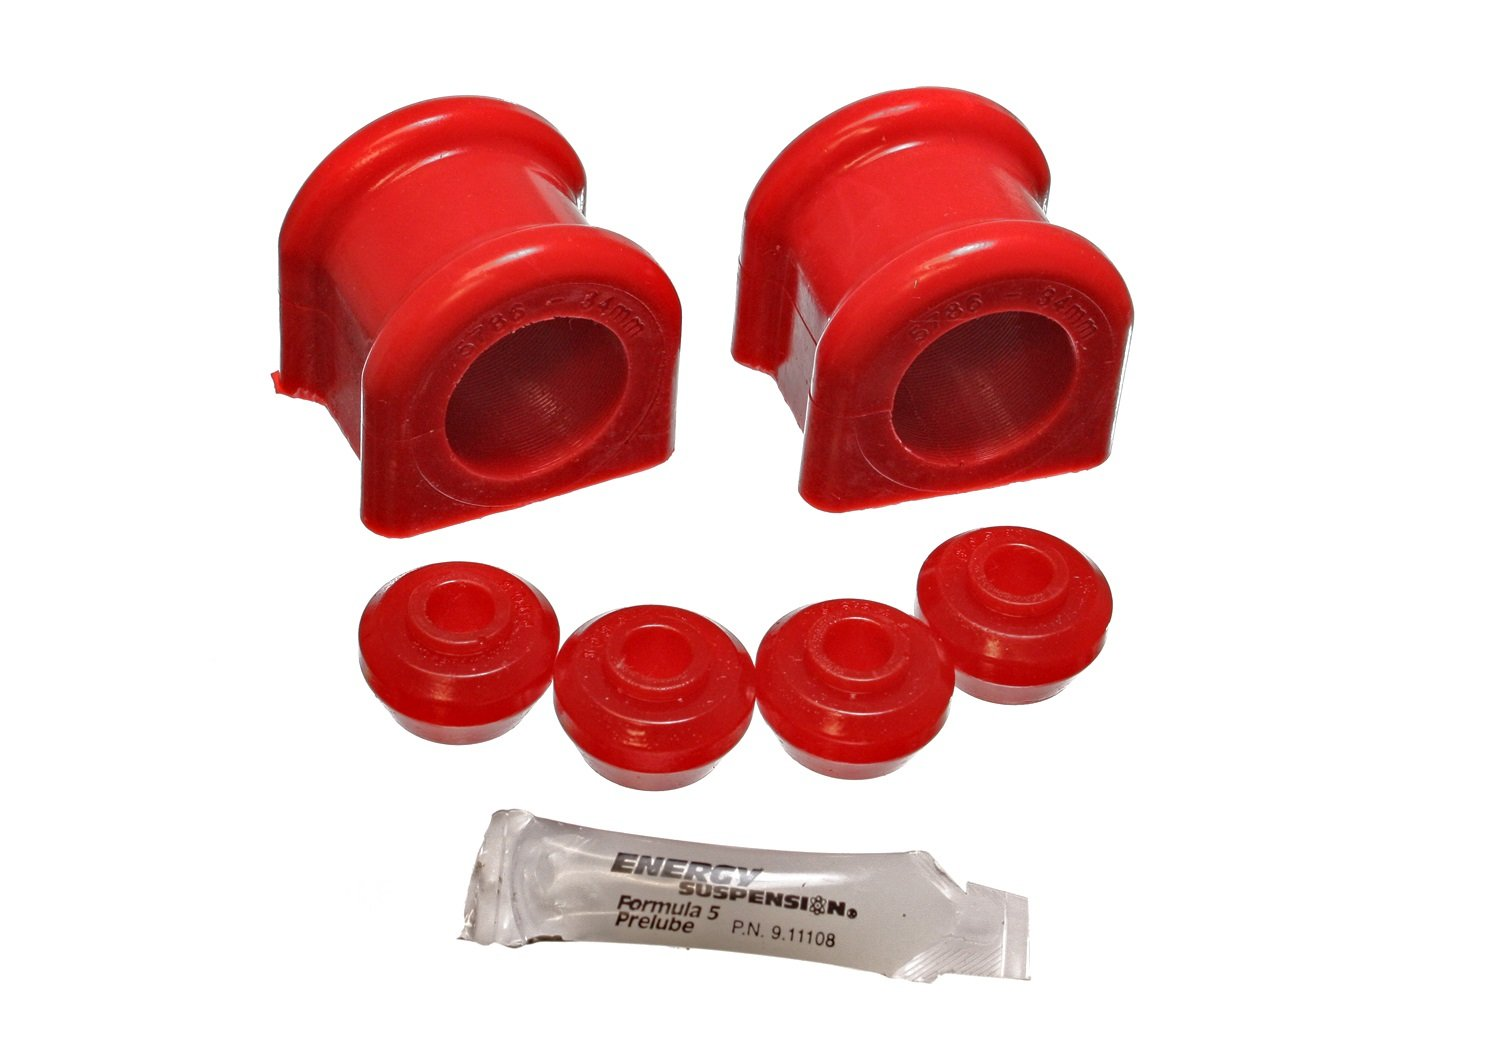 Energy Suspension 5.5159R Lenkerstangenbuchsen-Set, 34 mm von Energy Suspension